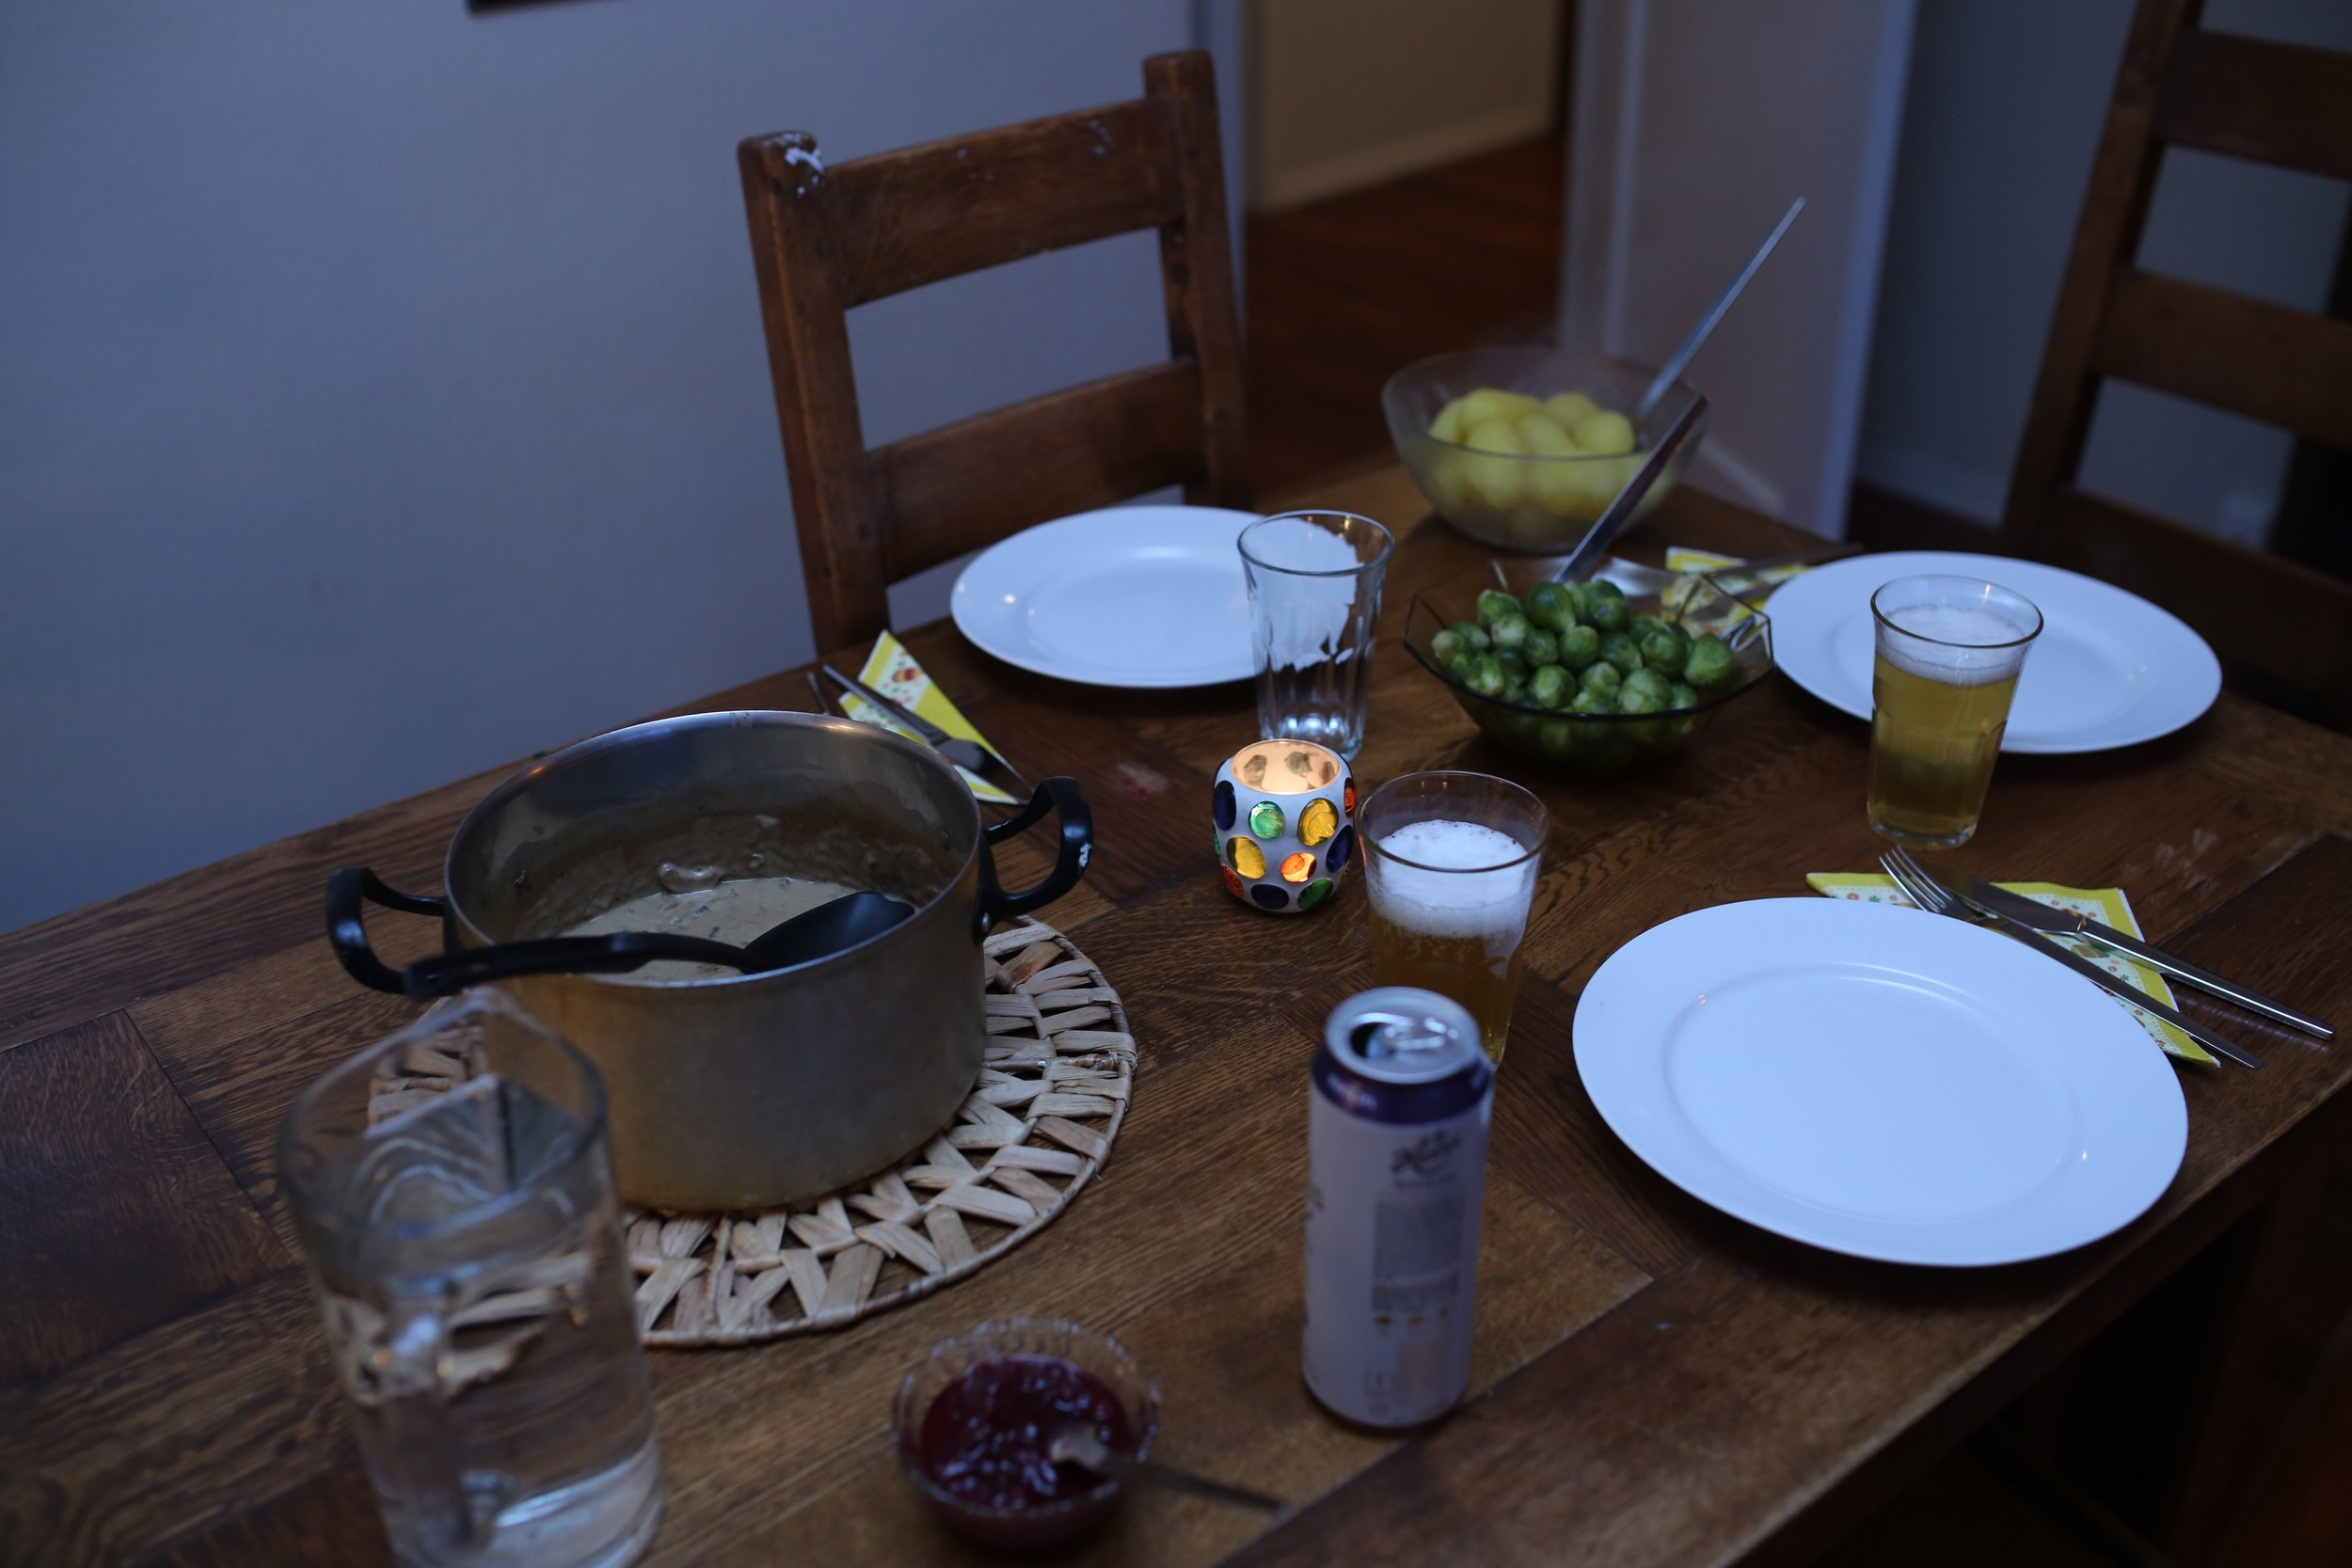 that morning, I had asked our hostess Terese if she could make a traditional Norwegian dish. She went with Reindeer stew, potatoes, brussel sprouts and lingonberry jam. We supplied the beer and dessert! Thank you Terese--it was nice to sit and talk with her. She was so down to earth and friendly. Roey and I really enjoyed talking about politics and culture with her. She was a gem.